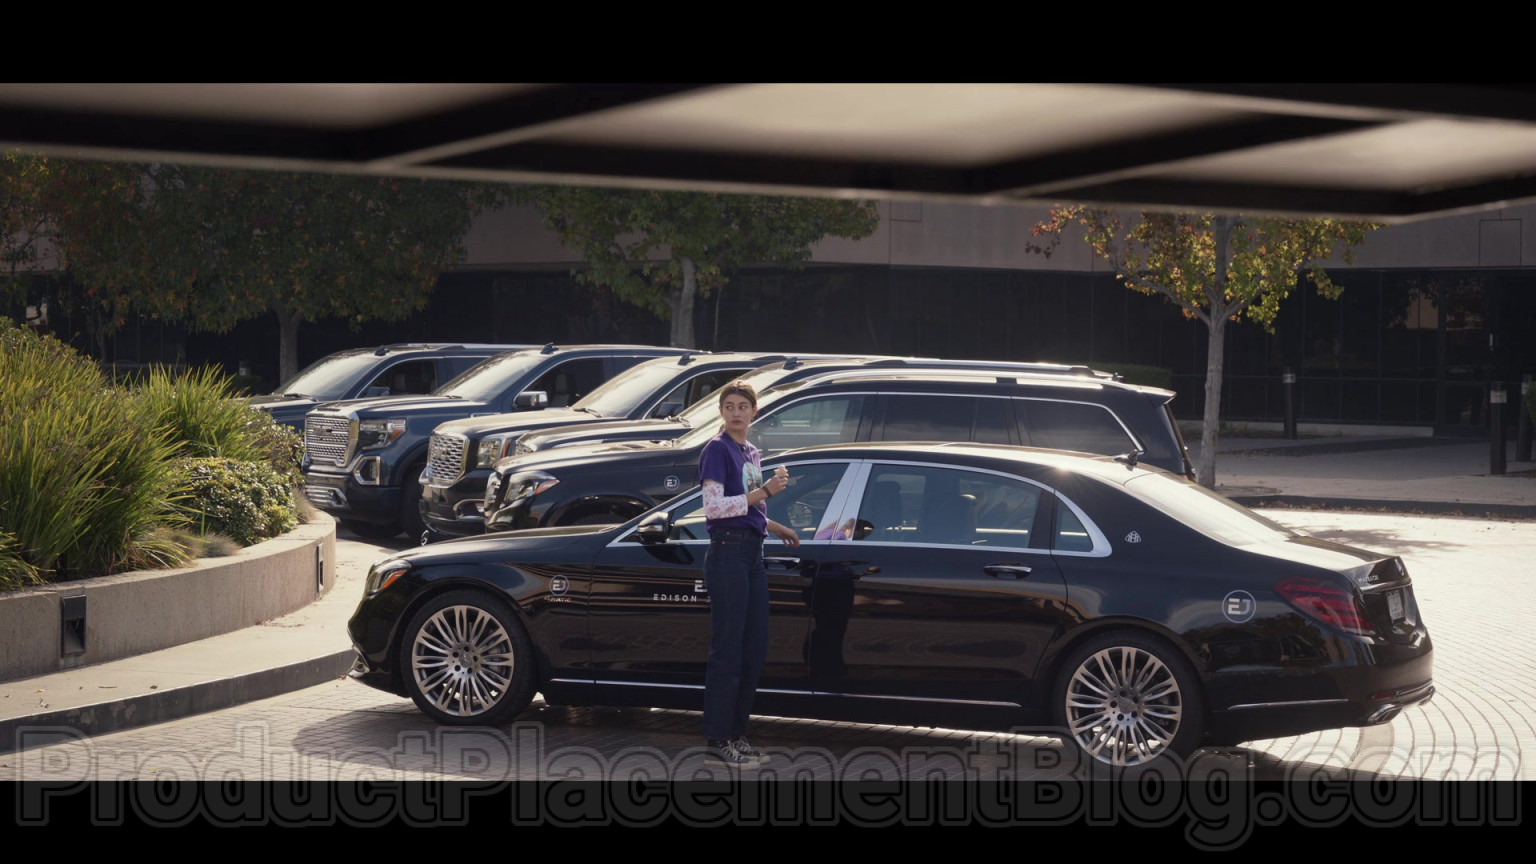 mercedes-benz s-class maybach s560 black car in space